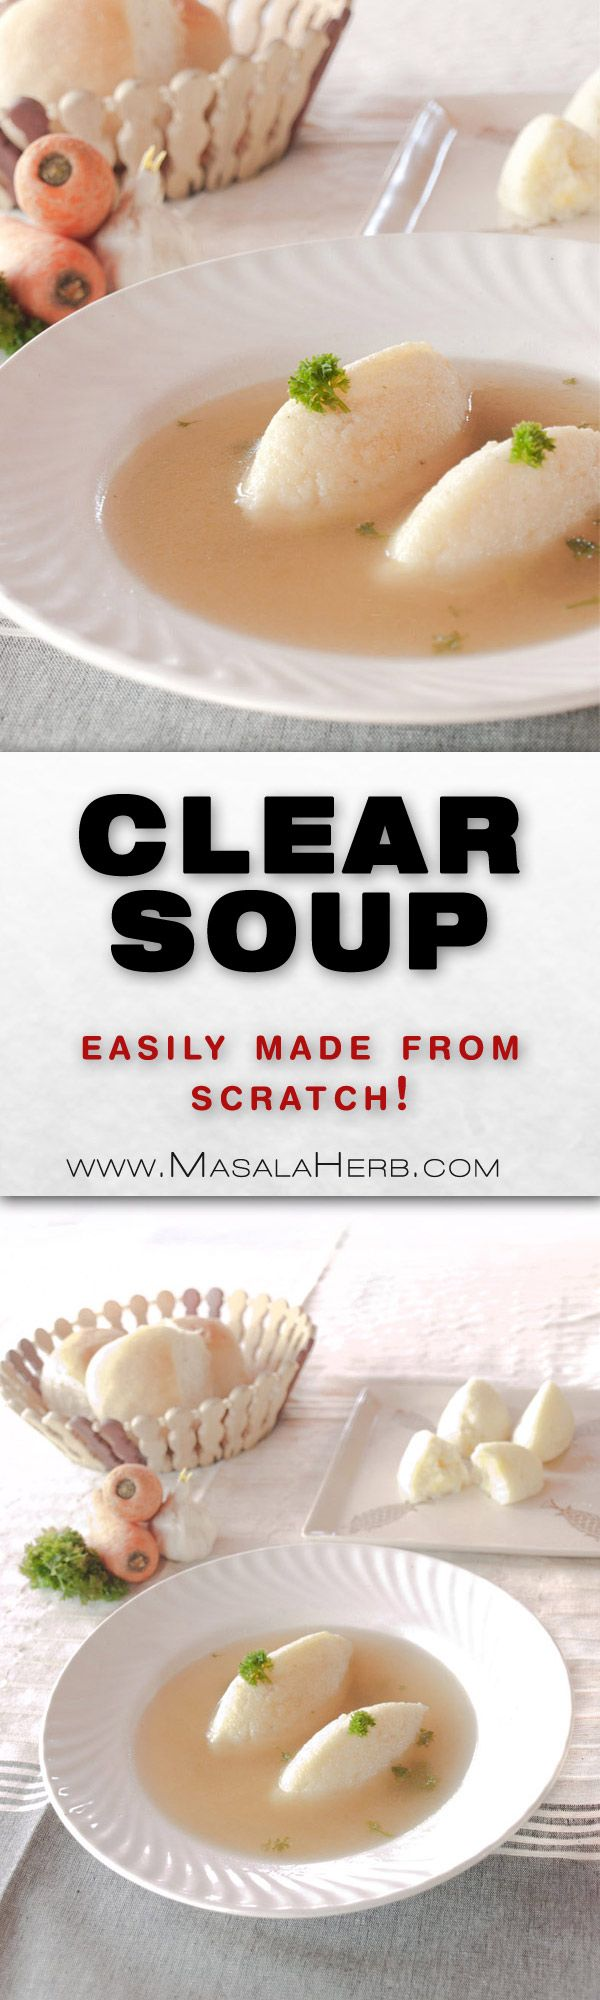 Clear Soup Recipe - How to make basic clear broth soup [+Health benefits] www.MasalaHerb.com make this clear #soup easily at home with the step by step from scratch #Recipe #austrian #cuisine